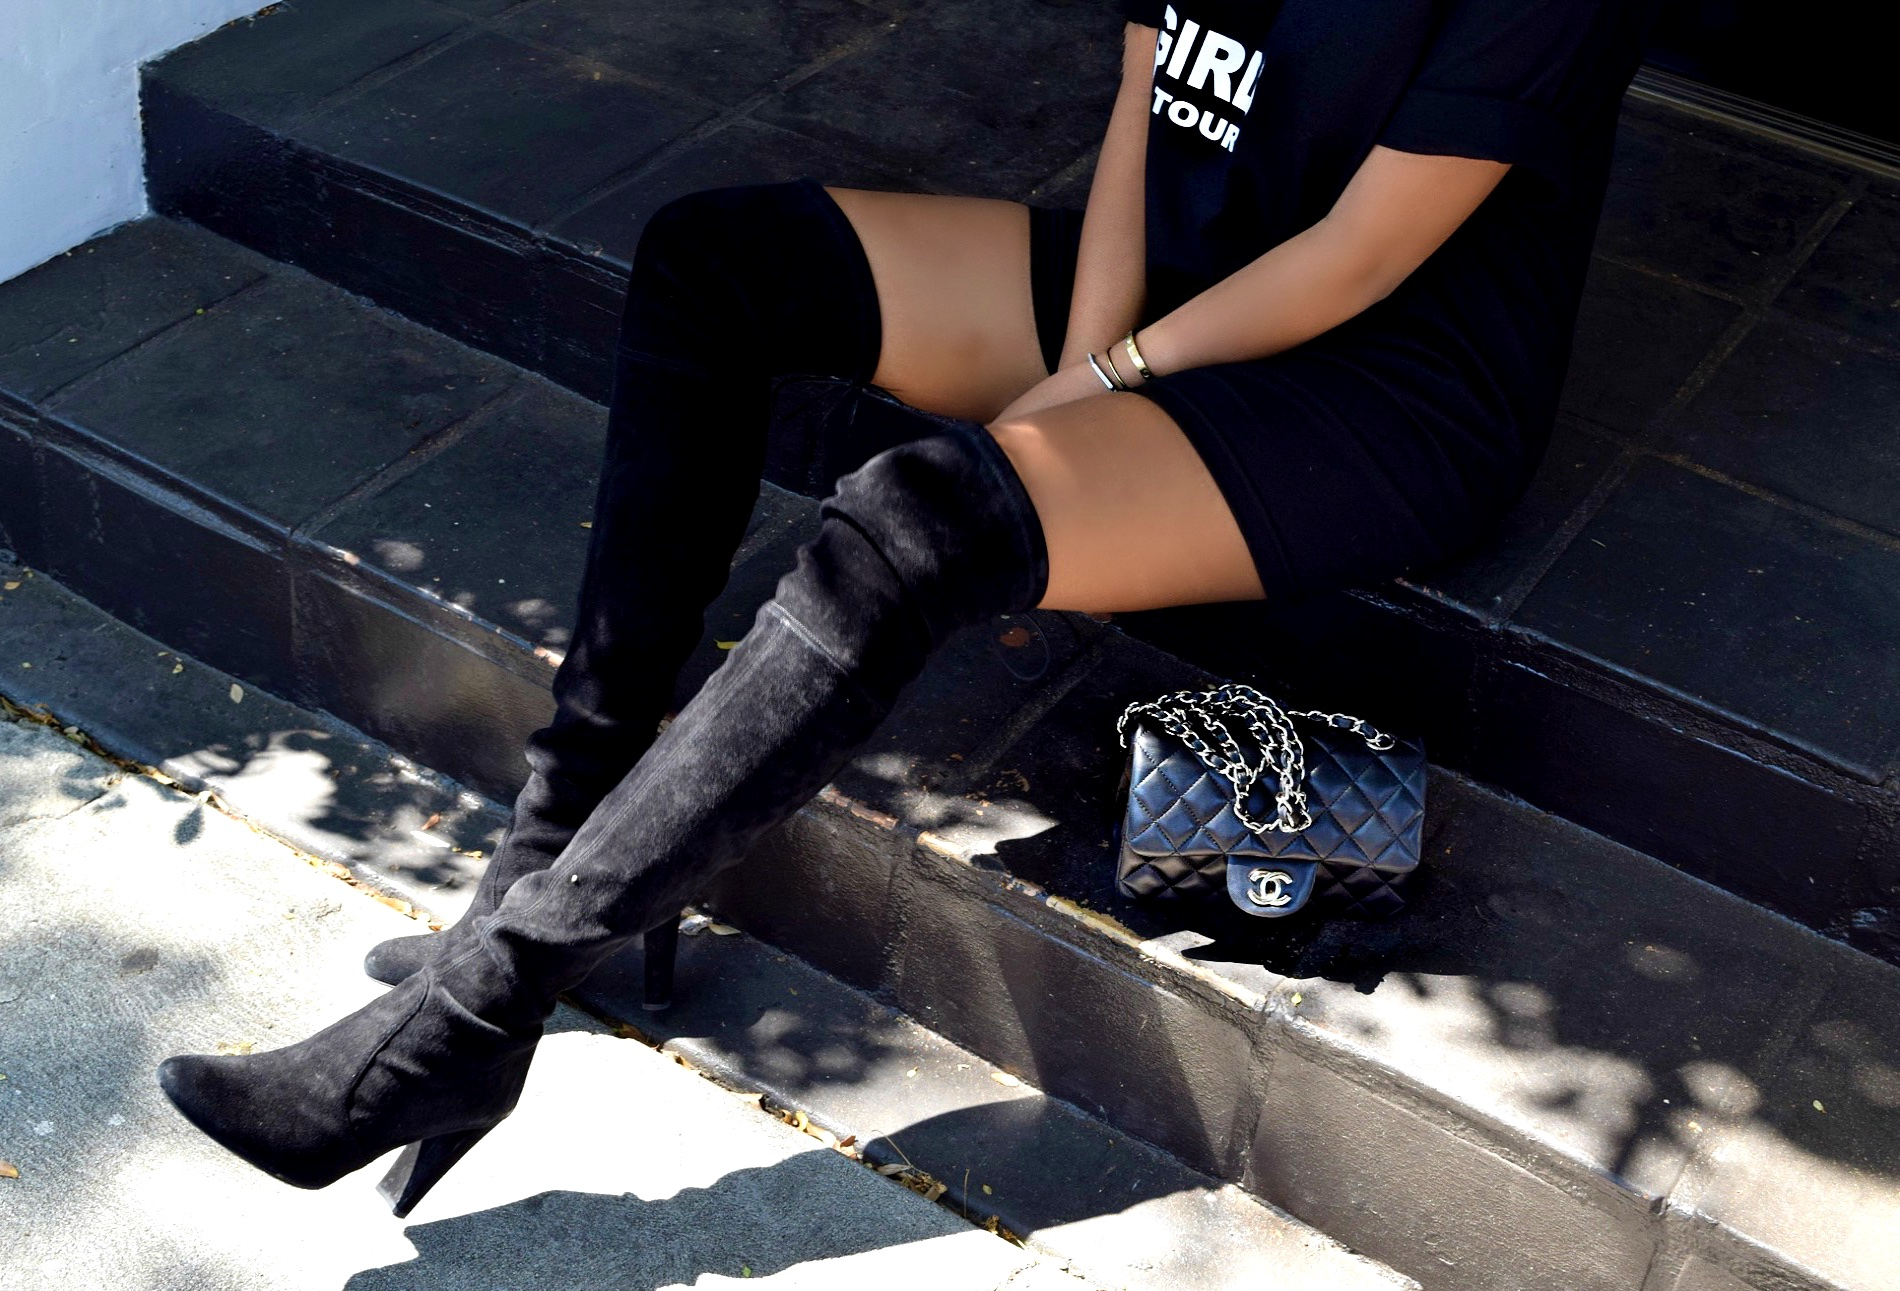 Stuart Weitzman Thigh High Boots & Classic Black Chanel Bag Details: To Style, With Love